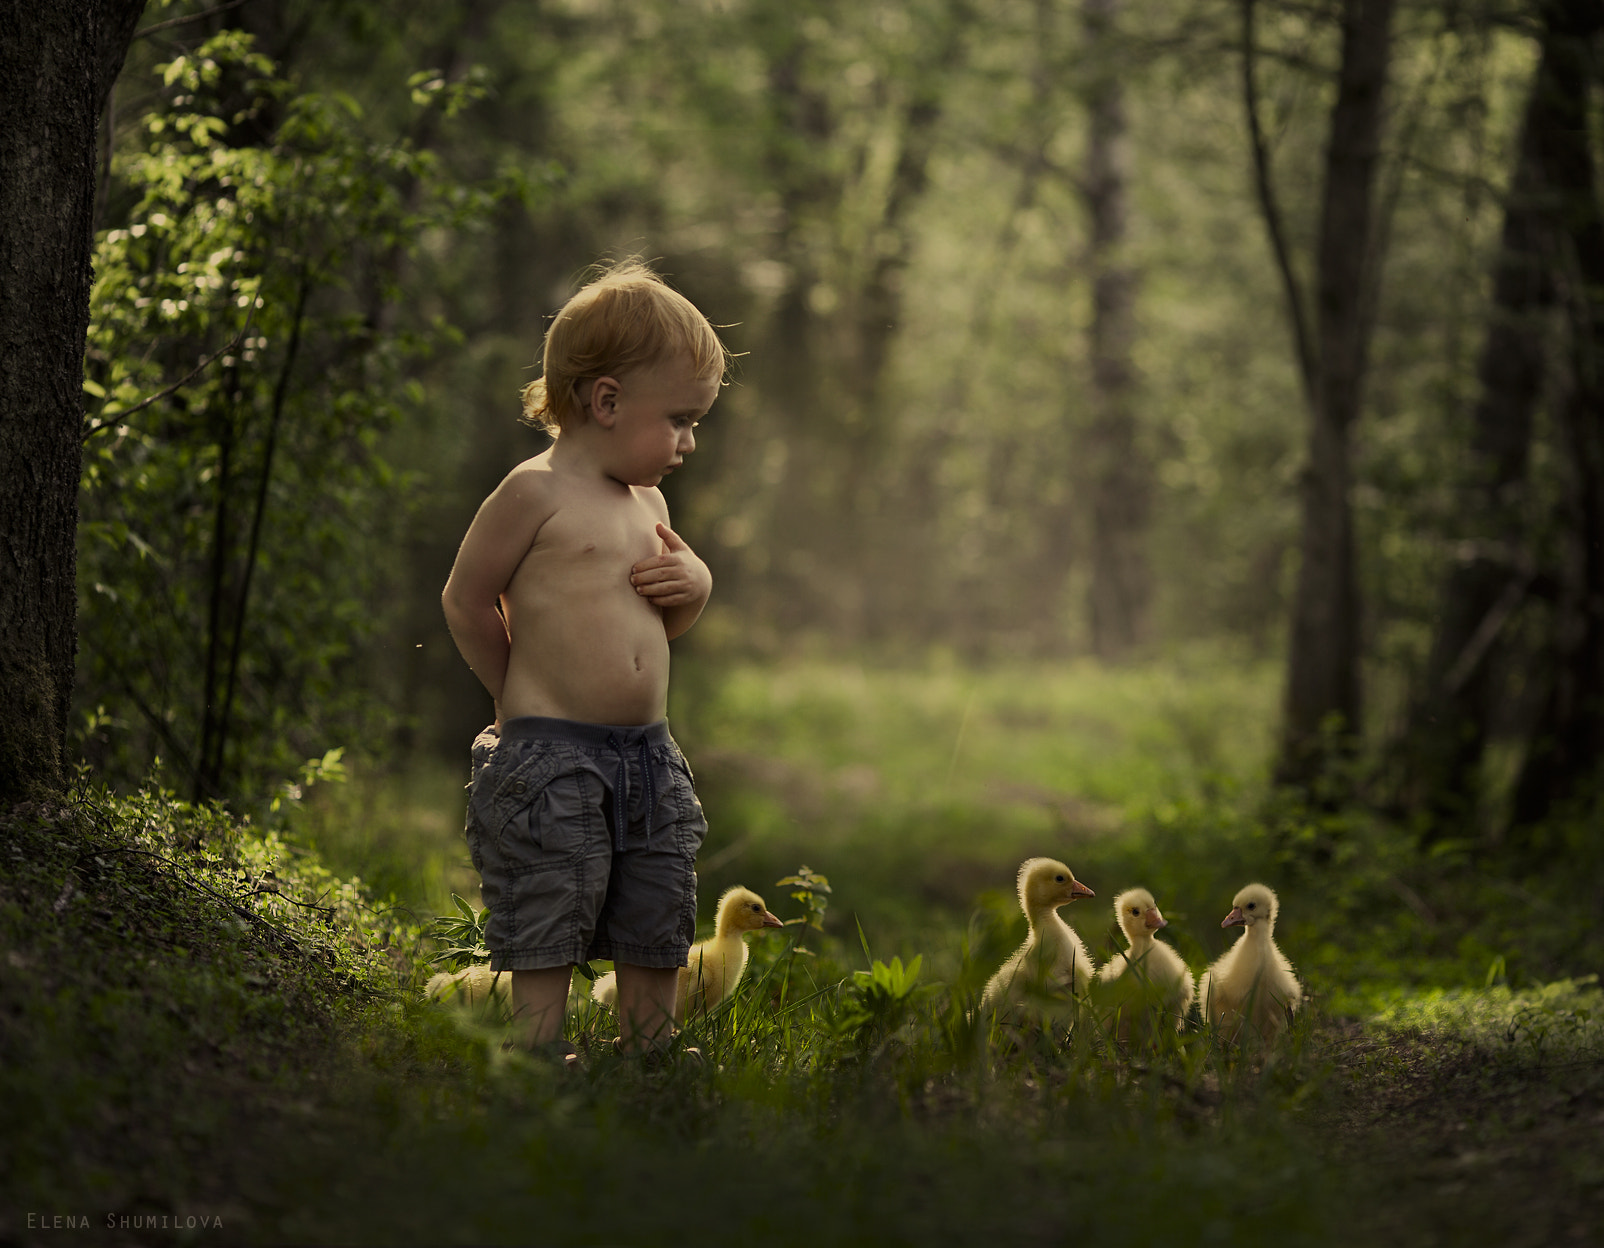 Photograph Kindergarten by Elena Shumilova on 500px